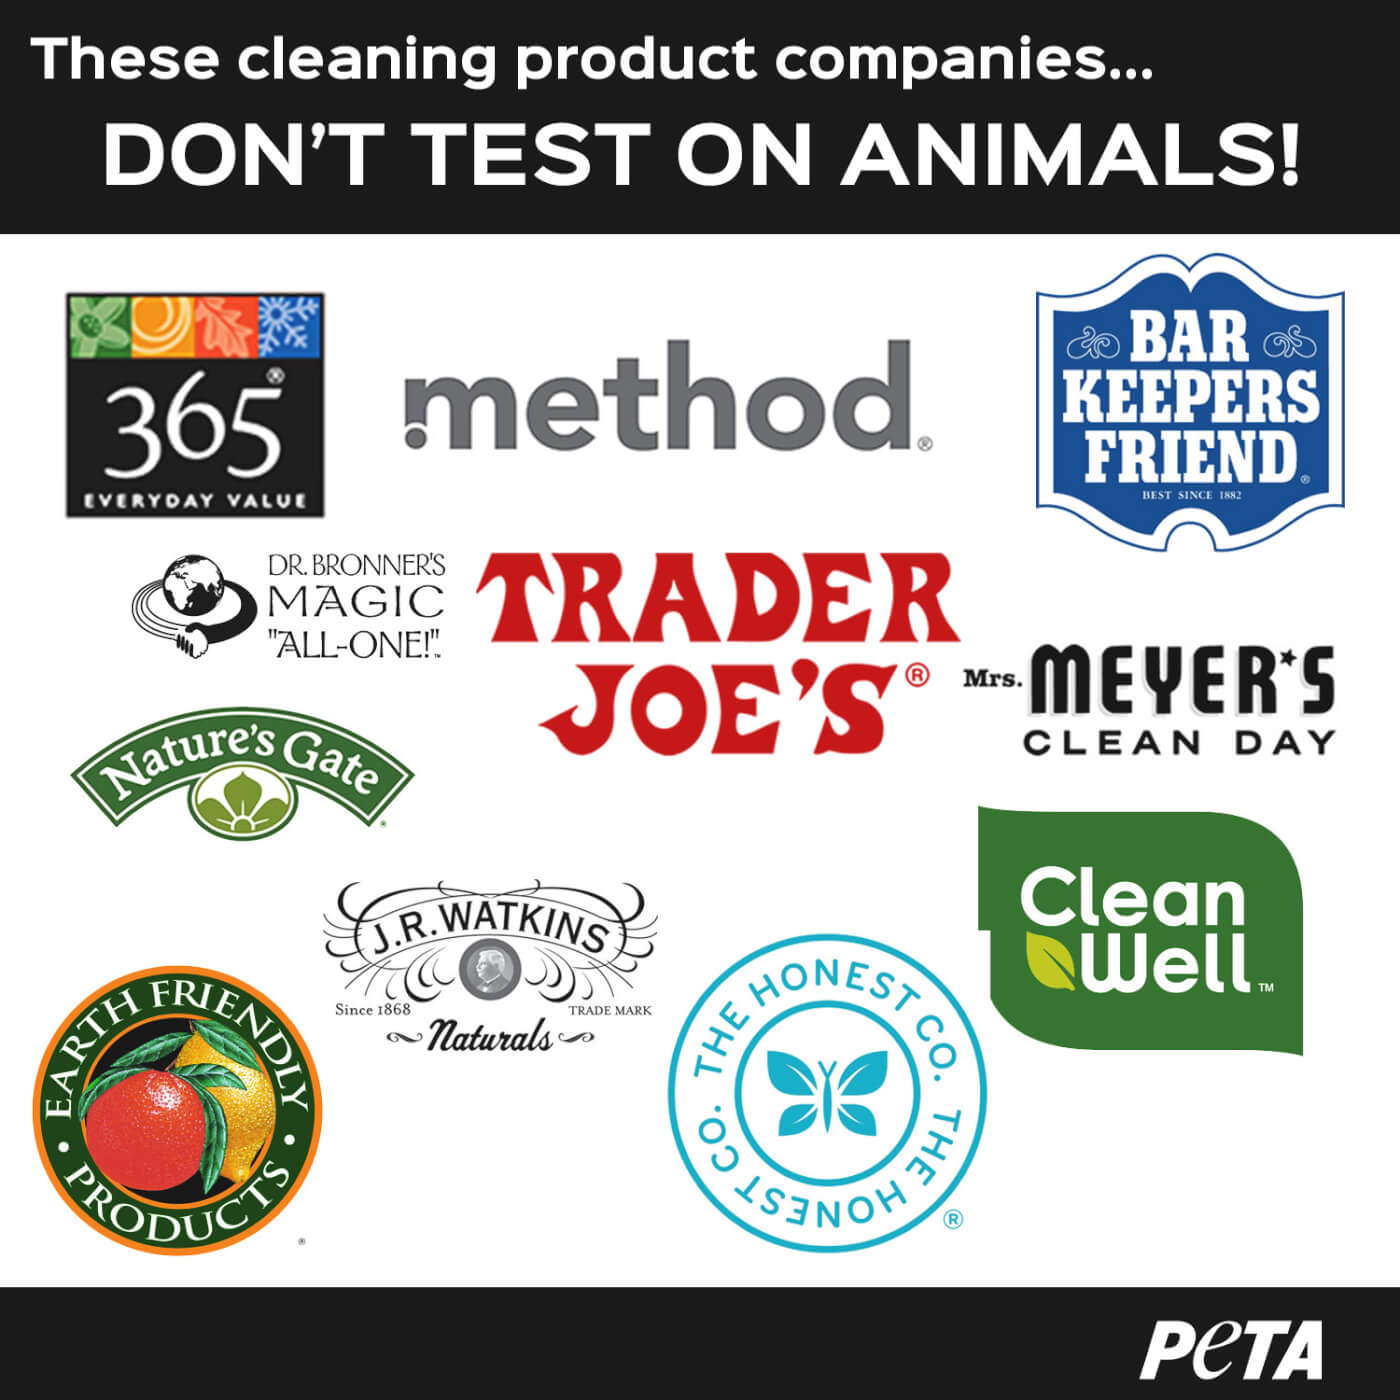 cleaning cruelty peta spring animals clean conscience test companies madness method seeds kindness cleansers supply